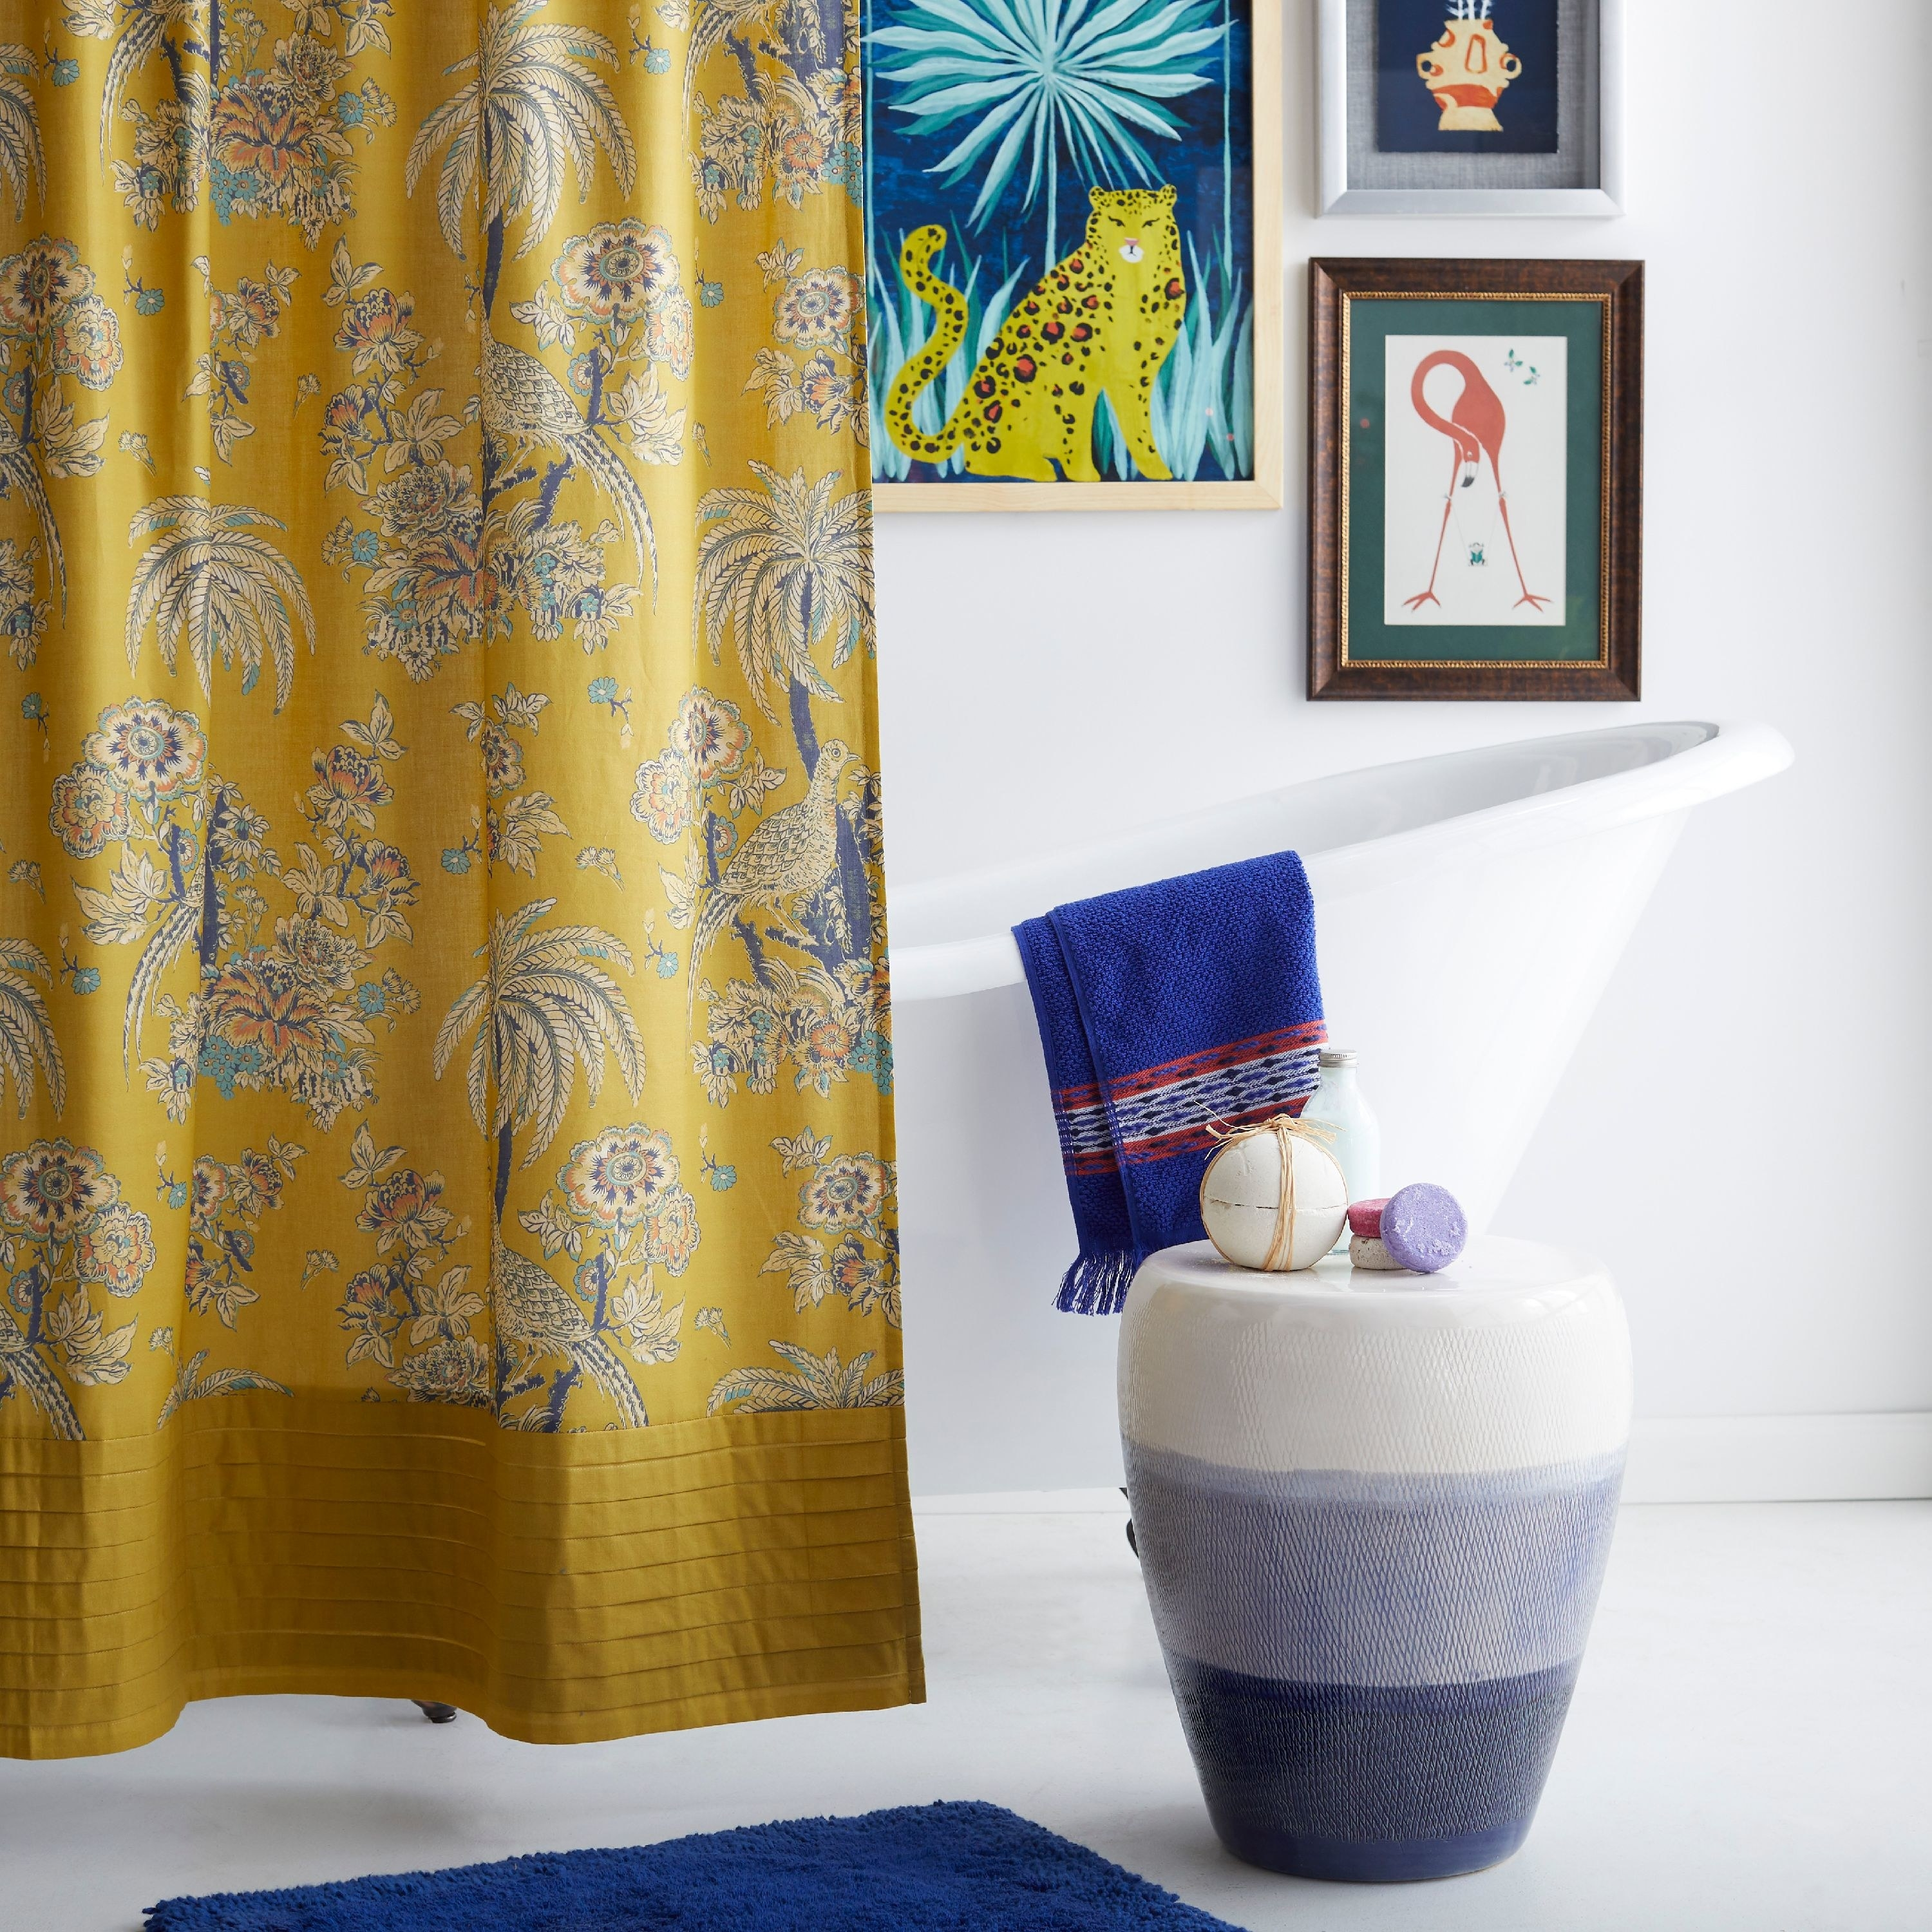 a yellow shower curtain with a floral design on it